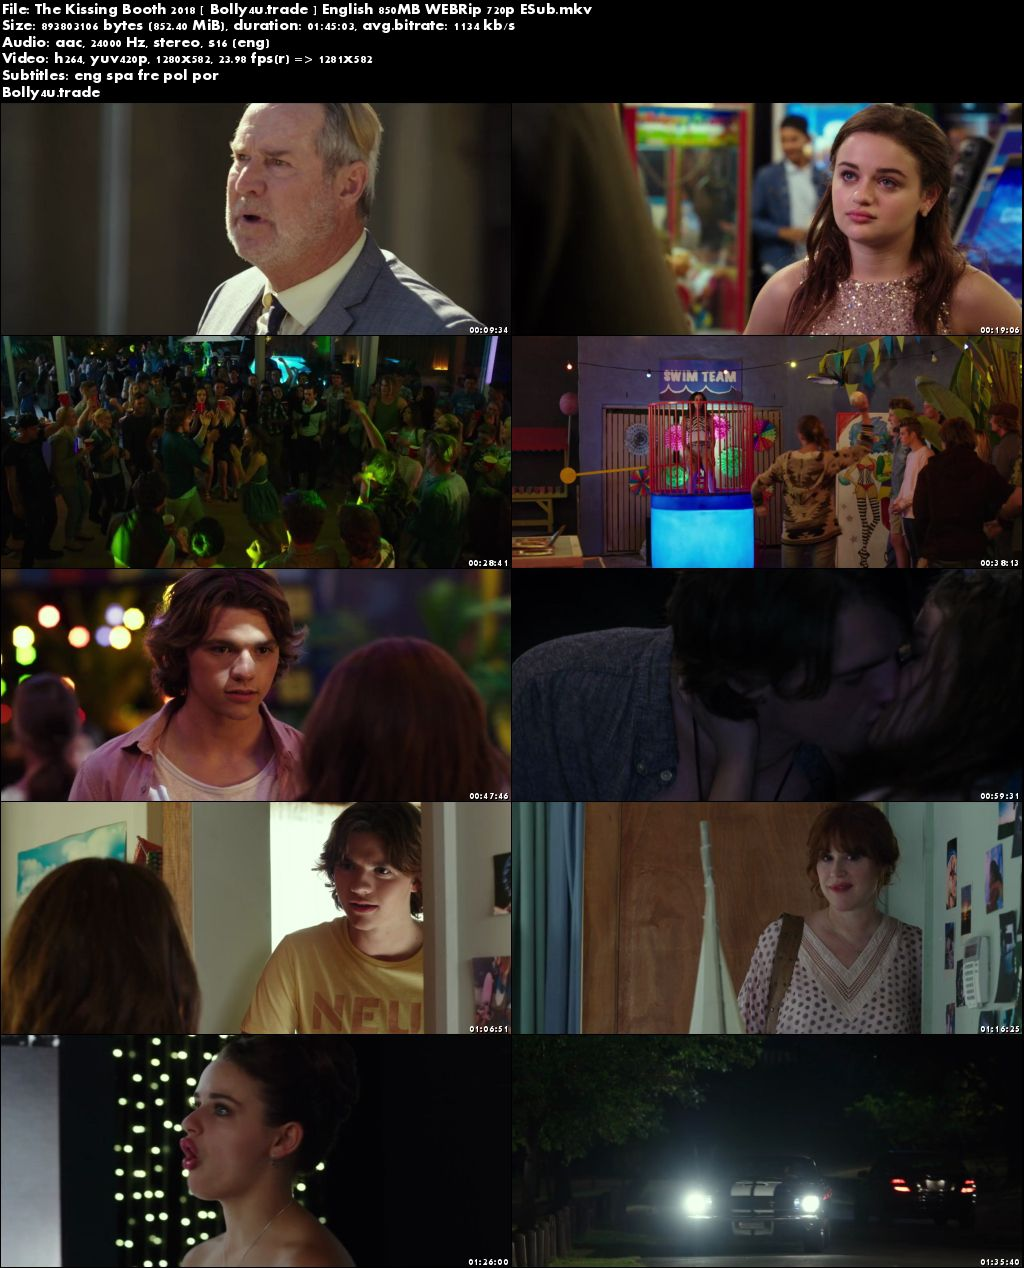 The Kissing Booth 2018 Web Dl 850mb English 720p Esub Full